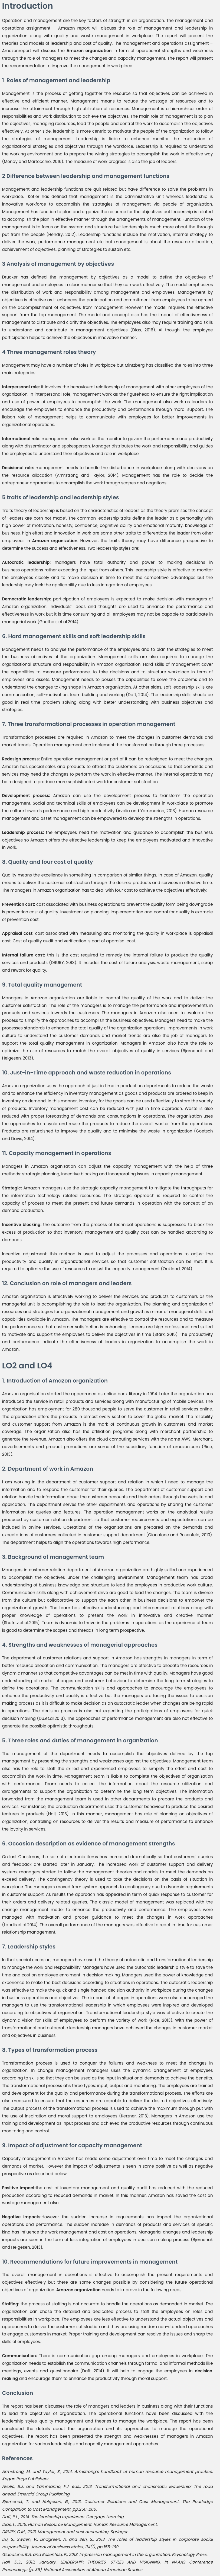 Unit 4 Management and Operations Assignment on Amazon Company